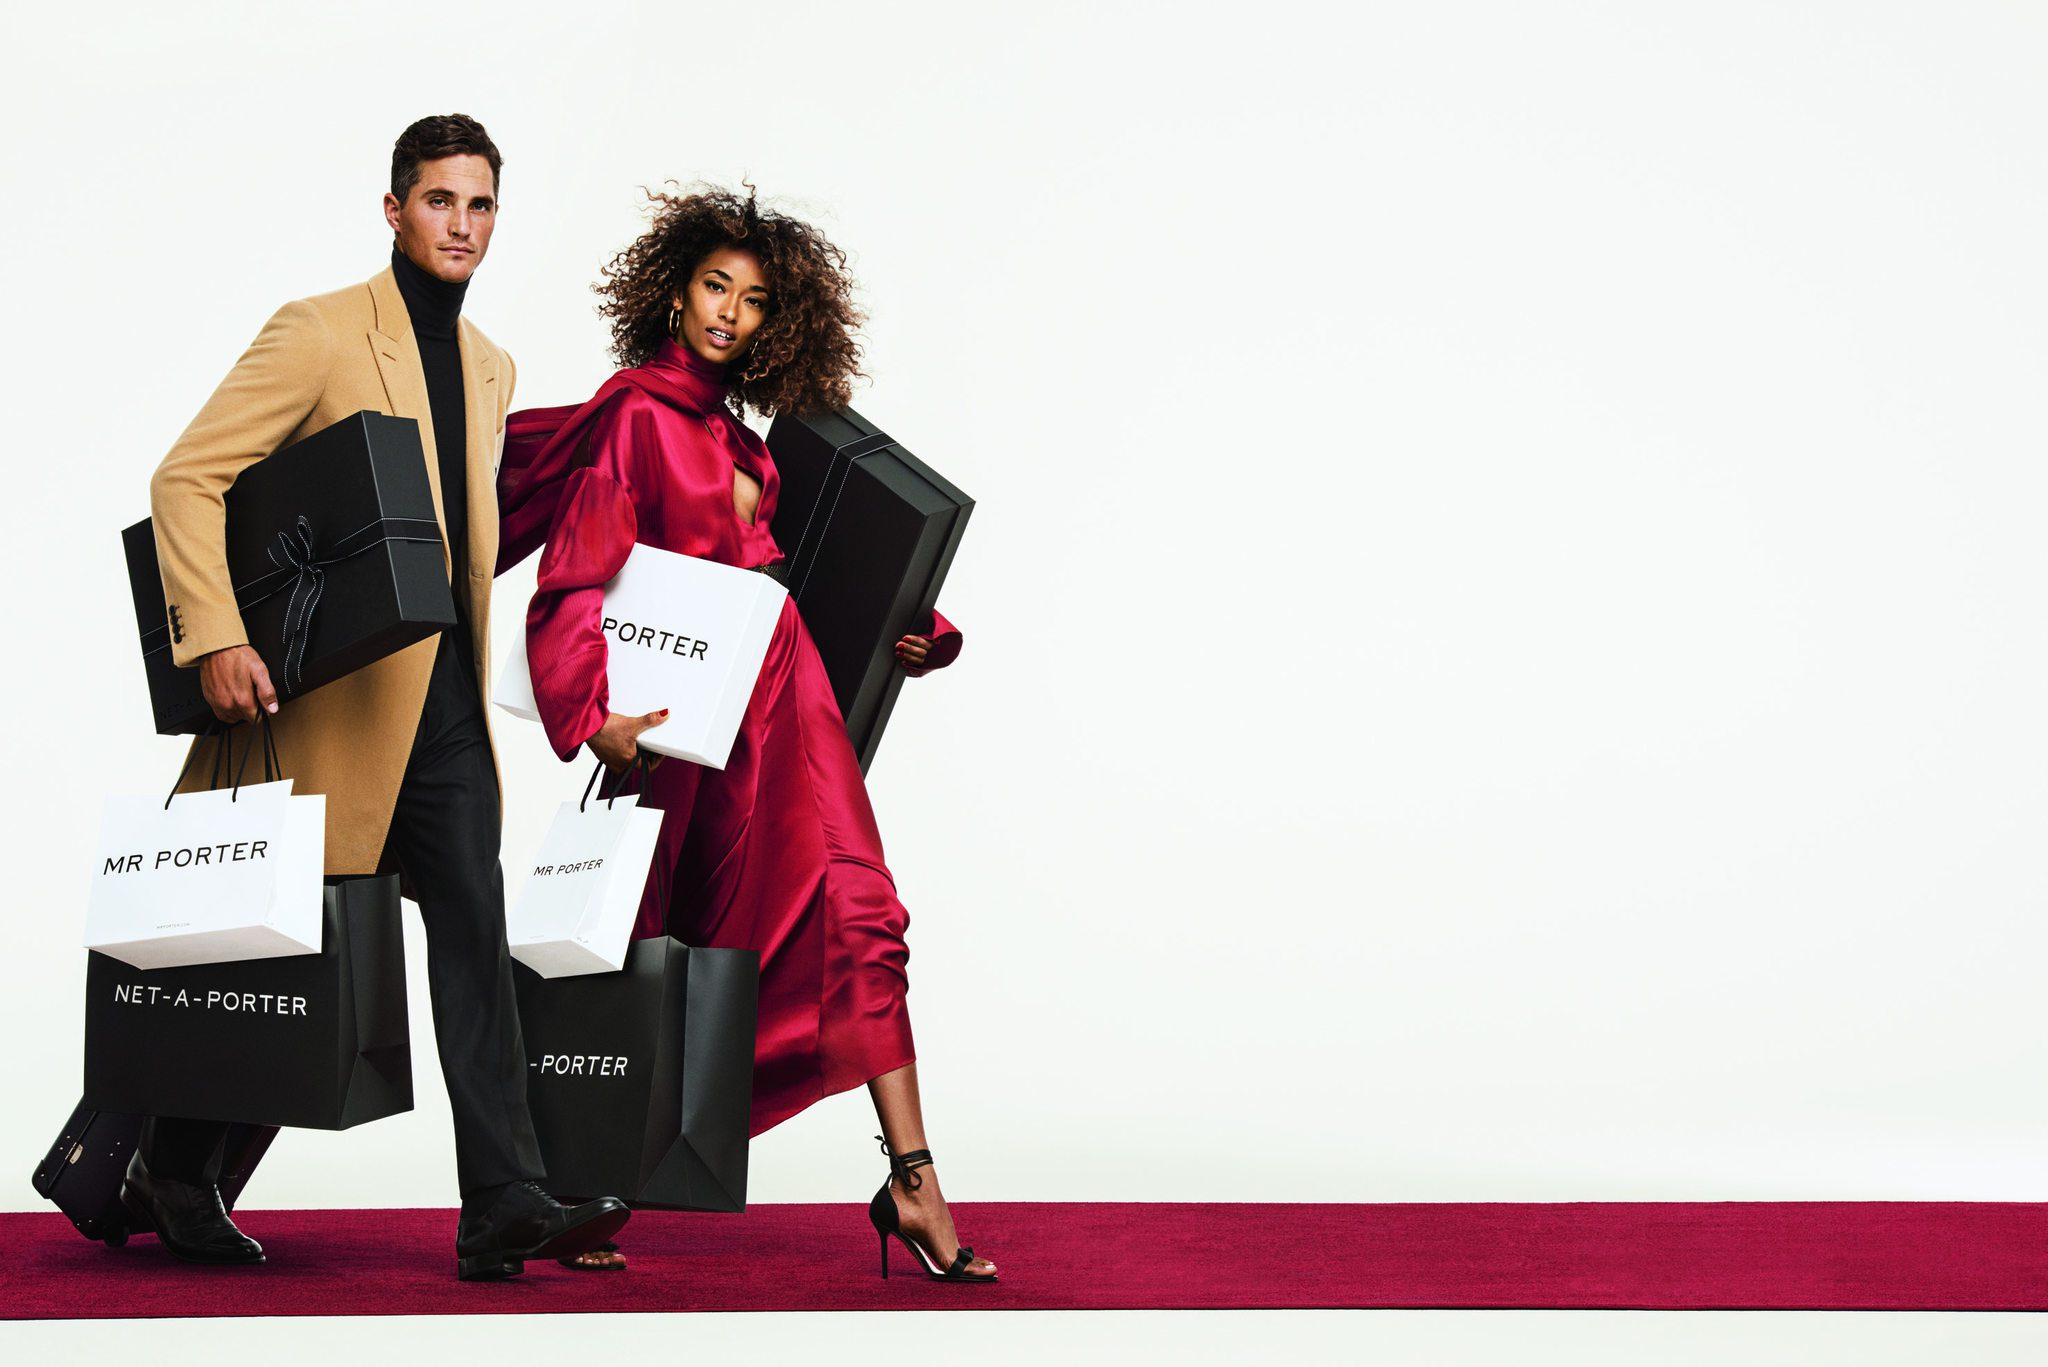 Mr. Porter and Net A Porter Holiday 2018 Campaign ad